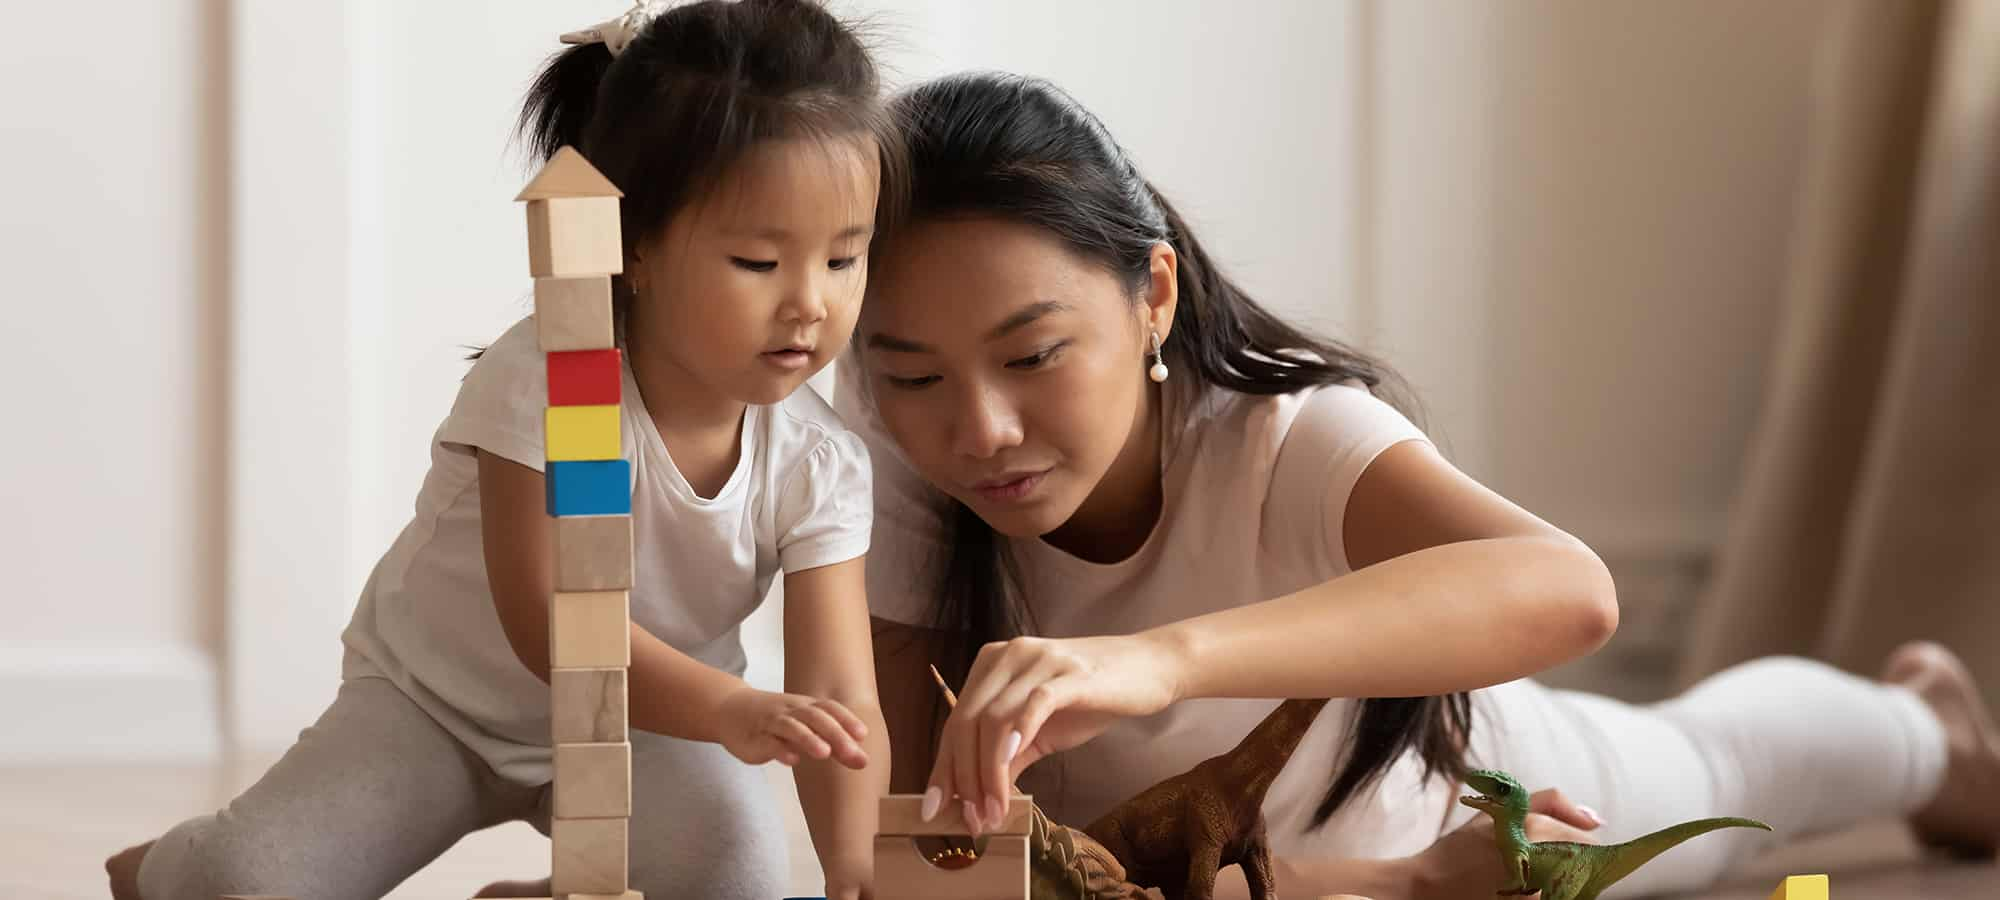 The Importance of Playtime